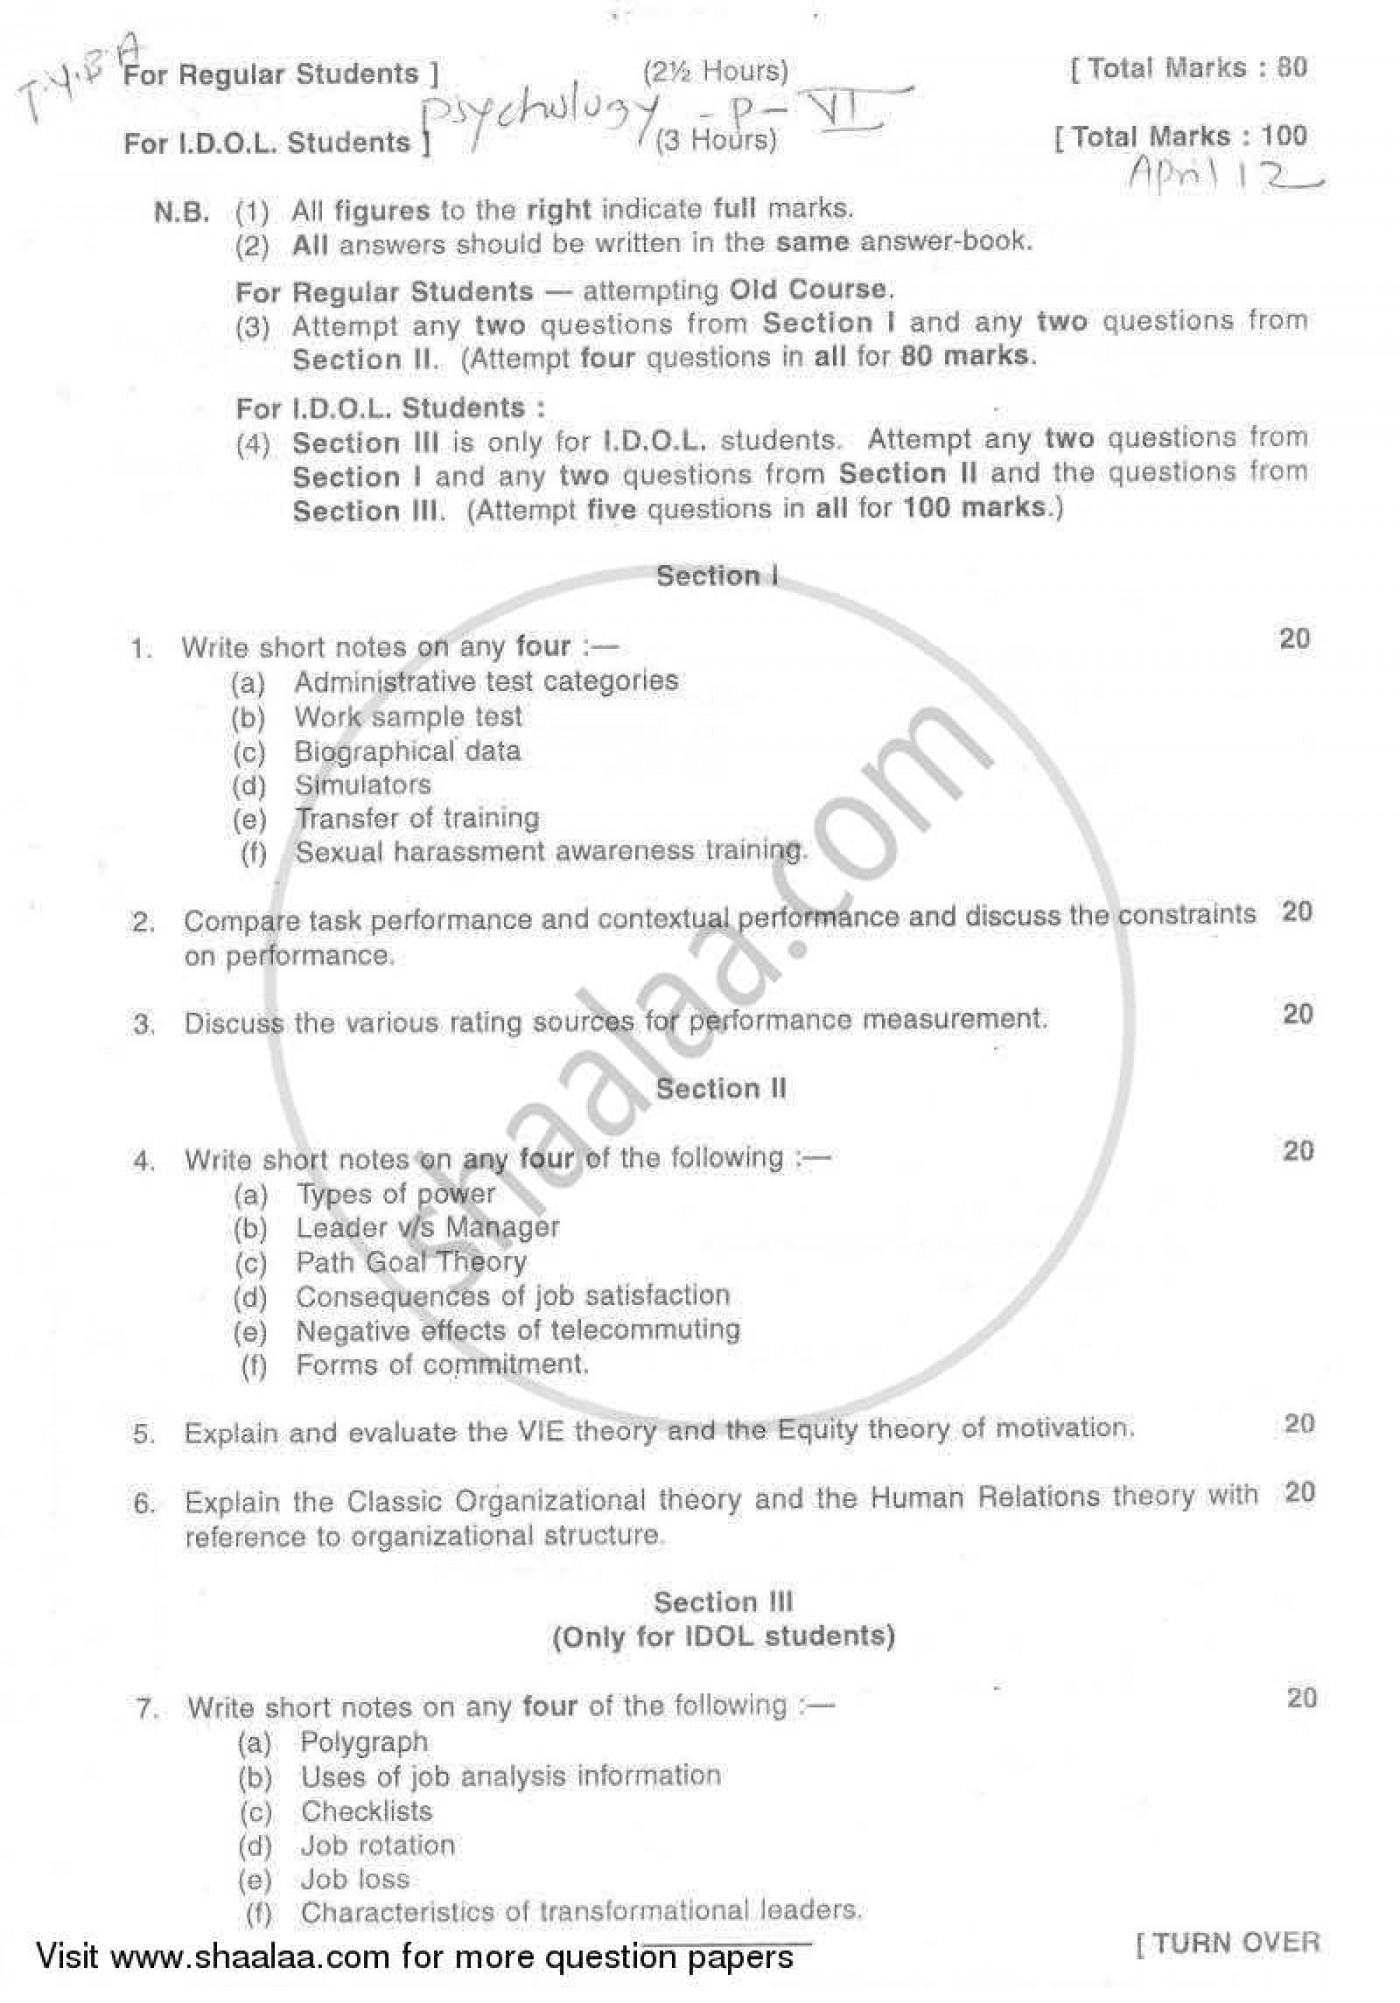 017 Psychologyearch Paper On Dreams University Of Mumbai Bachelor Industrial Organizational T Y Yearly Pattern Semester Tyba 2011 29a03925dfc524f2aa4cb10e4d3da996a Singular Psychology Research Articles News 1400